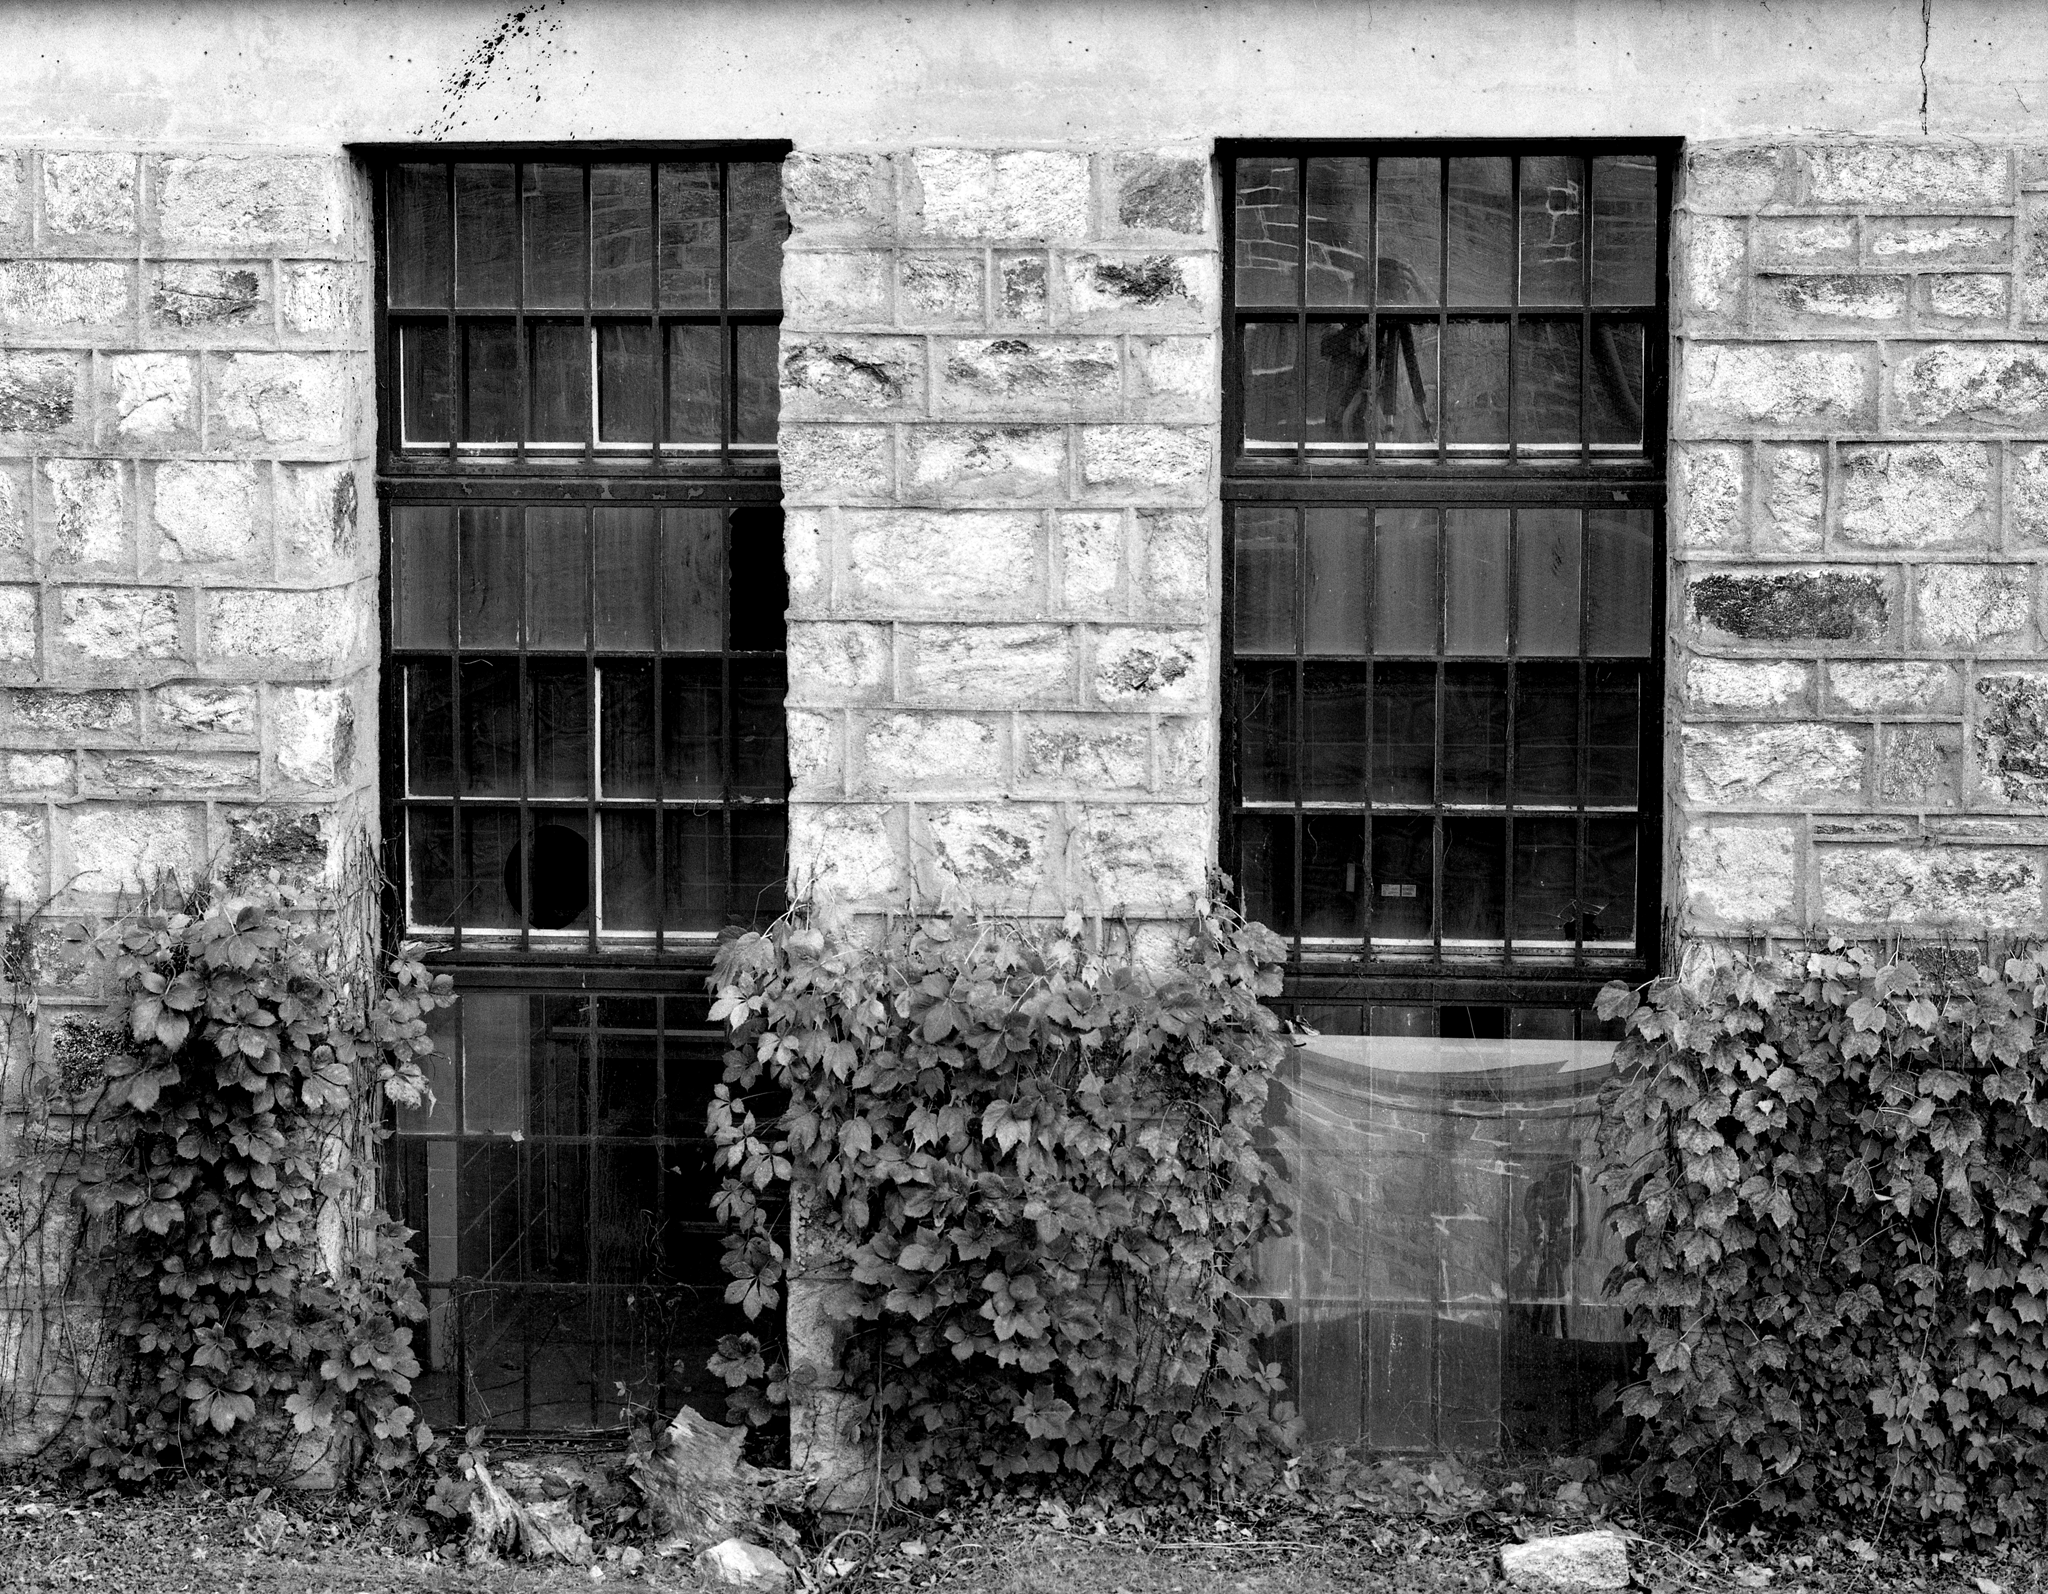 4x5_for_365_project_0276_esp_outer_bldg_windows.png